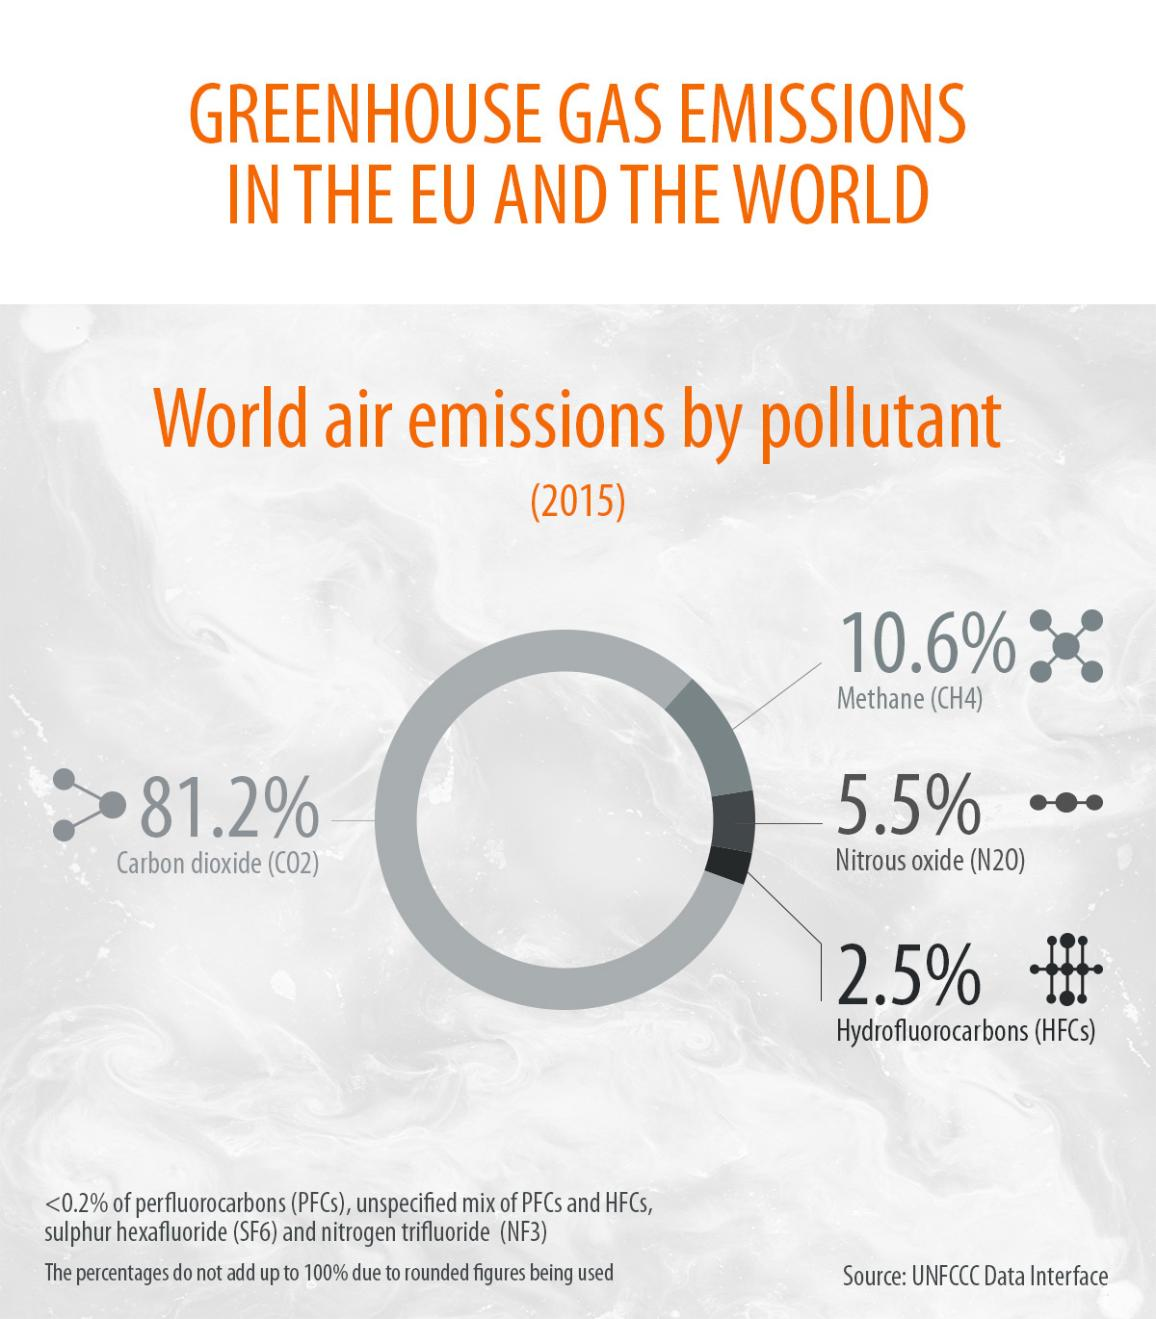 Infographic on greenhouse gas emissions produced in the EU  in 2015 and the share of various gases